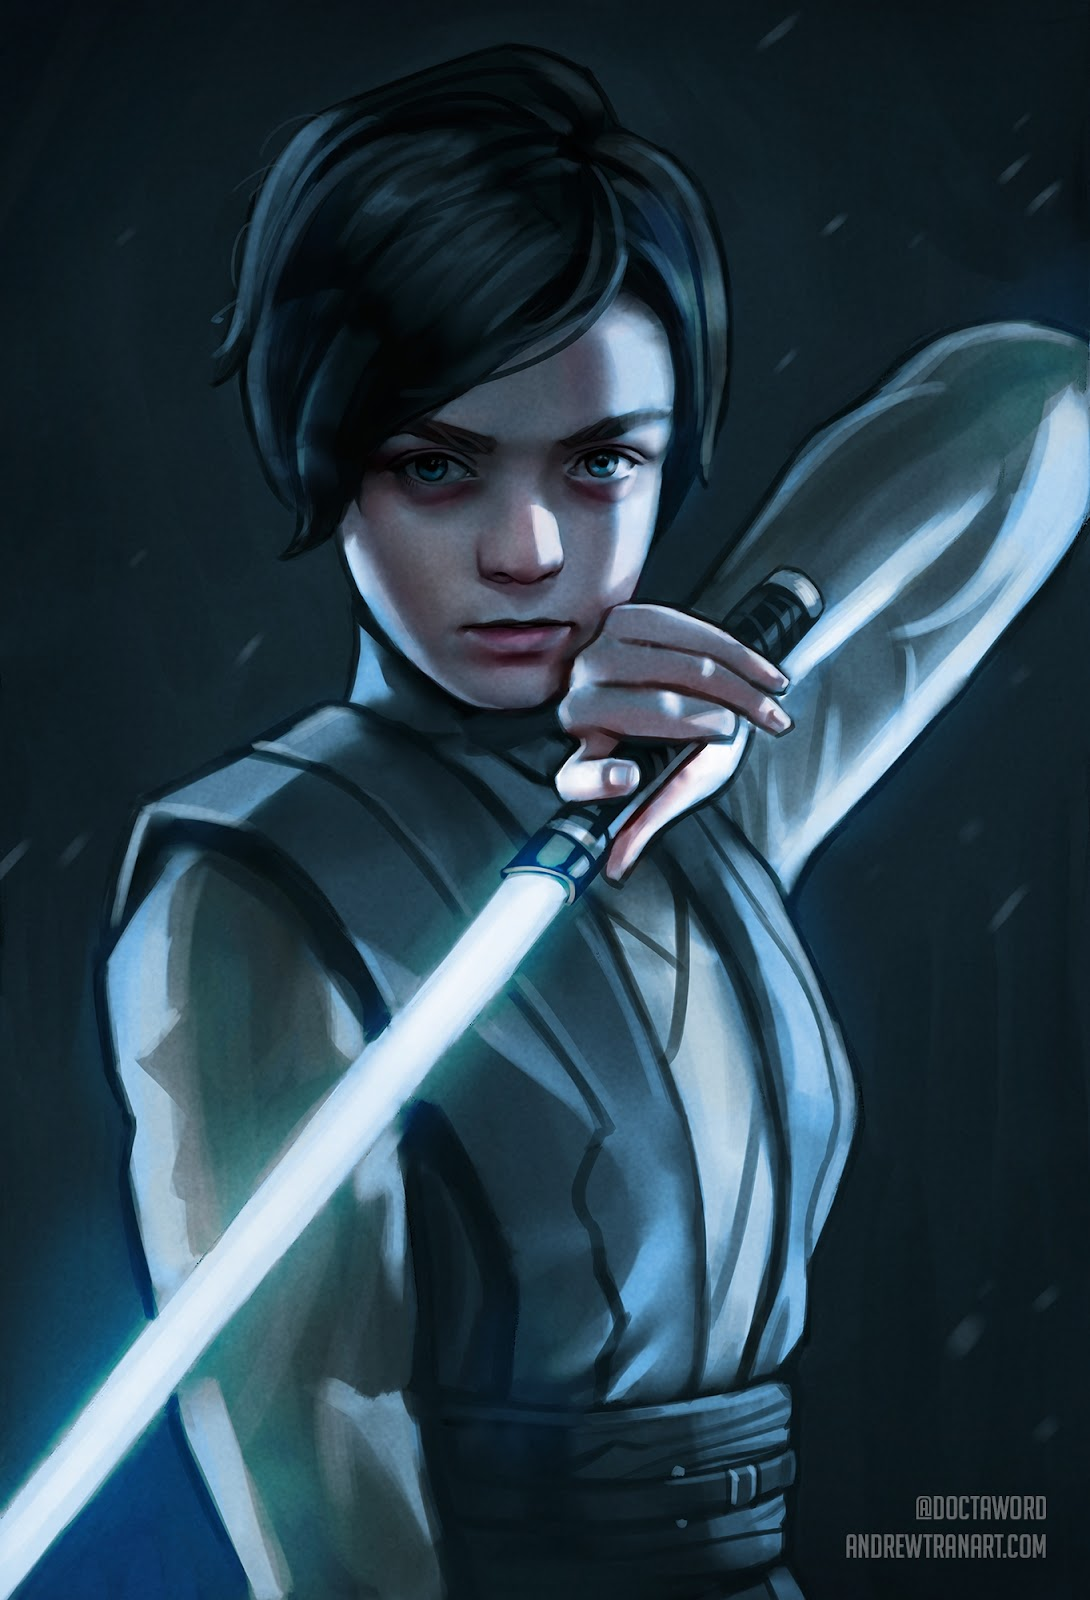 04-Arya-Stark-Maisie-Williams-Andrew-D-Tran-Doctaword-Star-Wars-and-Game-of-Thrones-Mashup-www-designstack-co